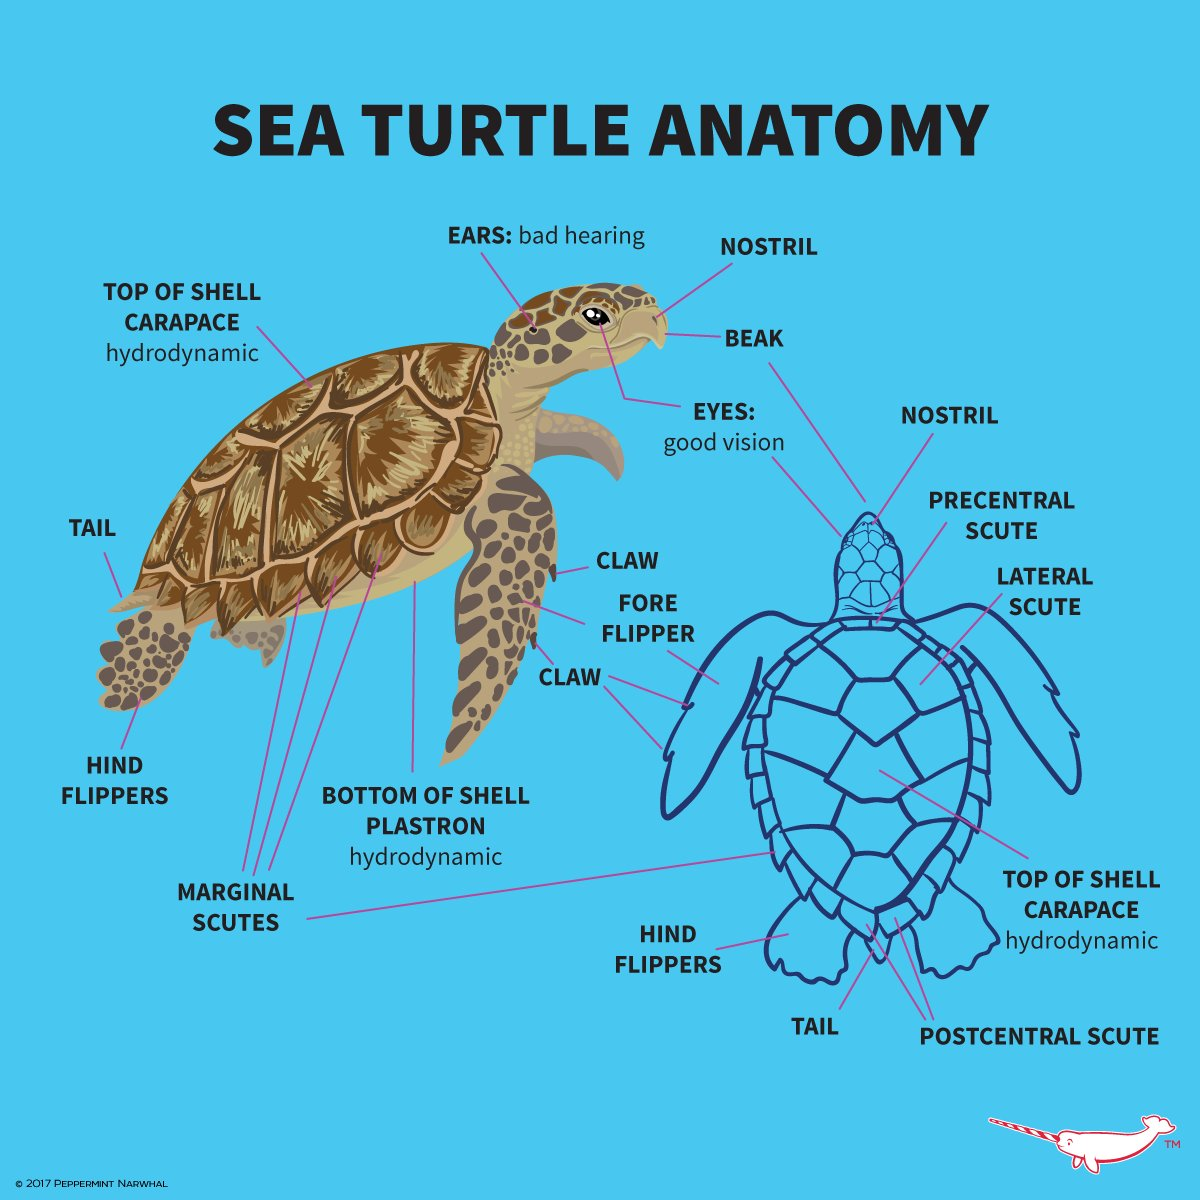 Anatomy of sea turtles